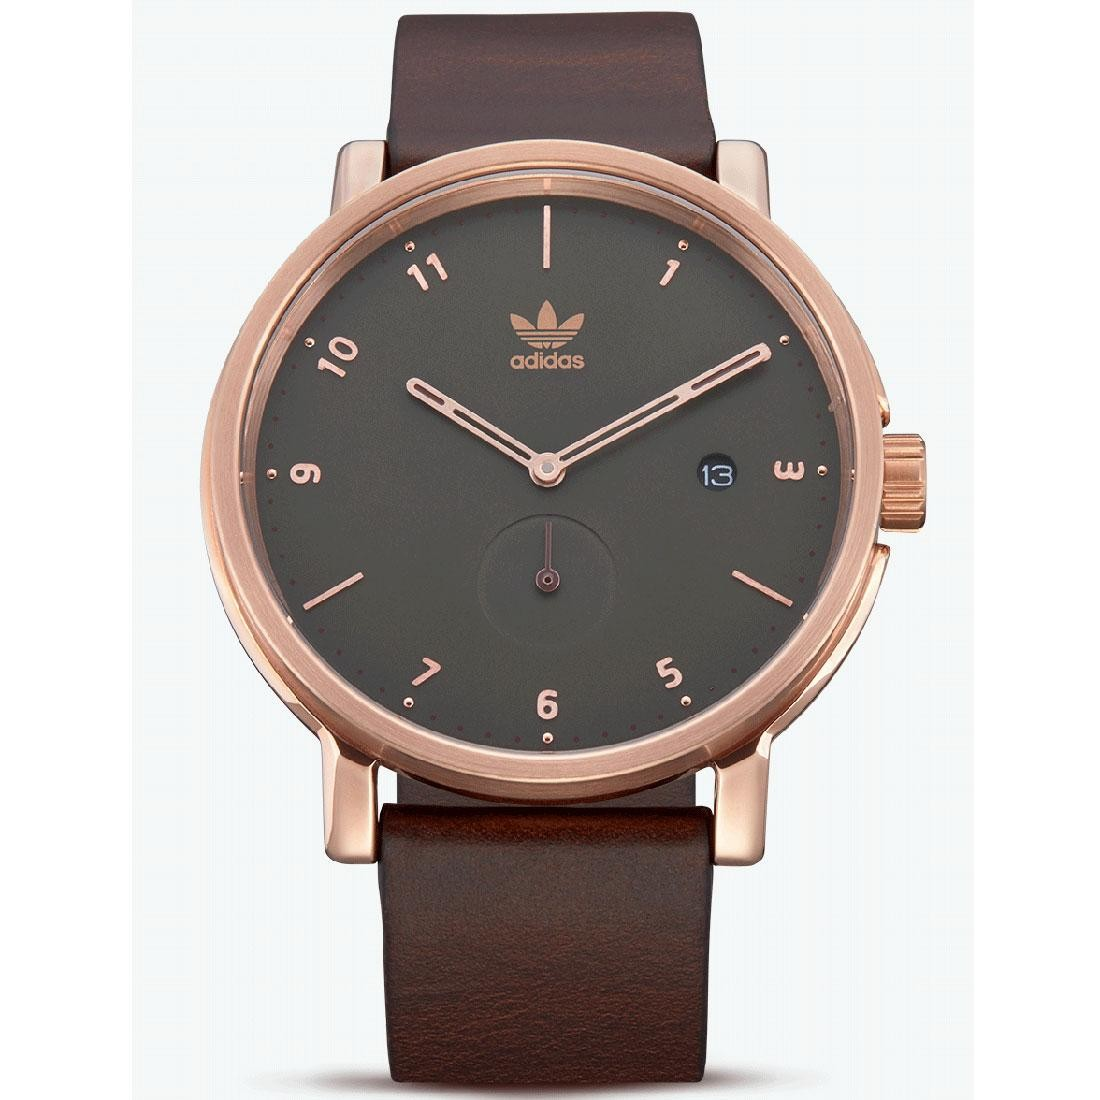 Adidas District_LX2 Z12-3038-00 Watch (gold / rose gold / mid olive / dark brown)